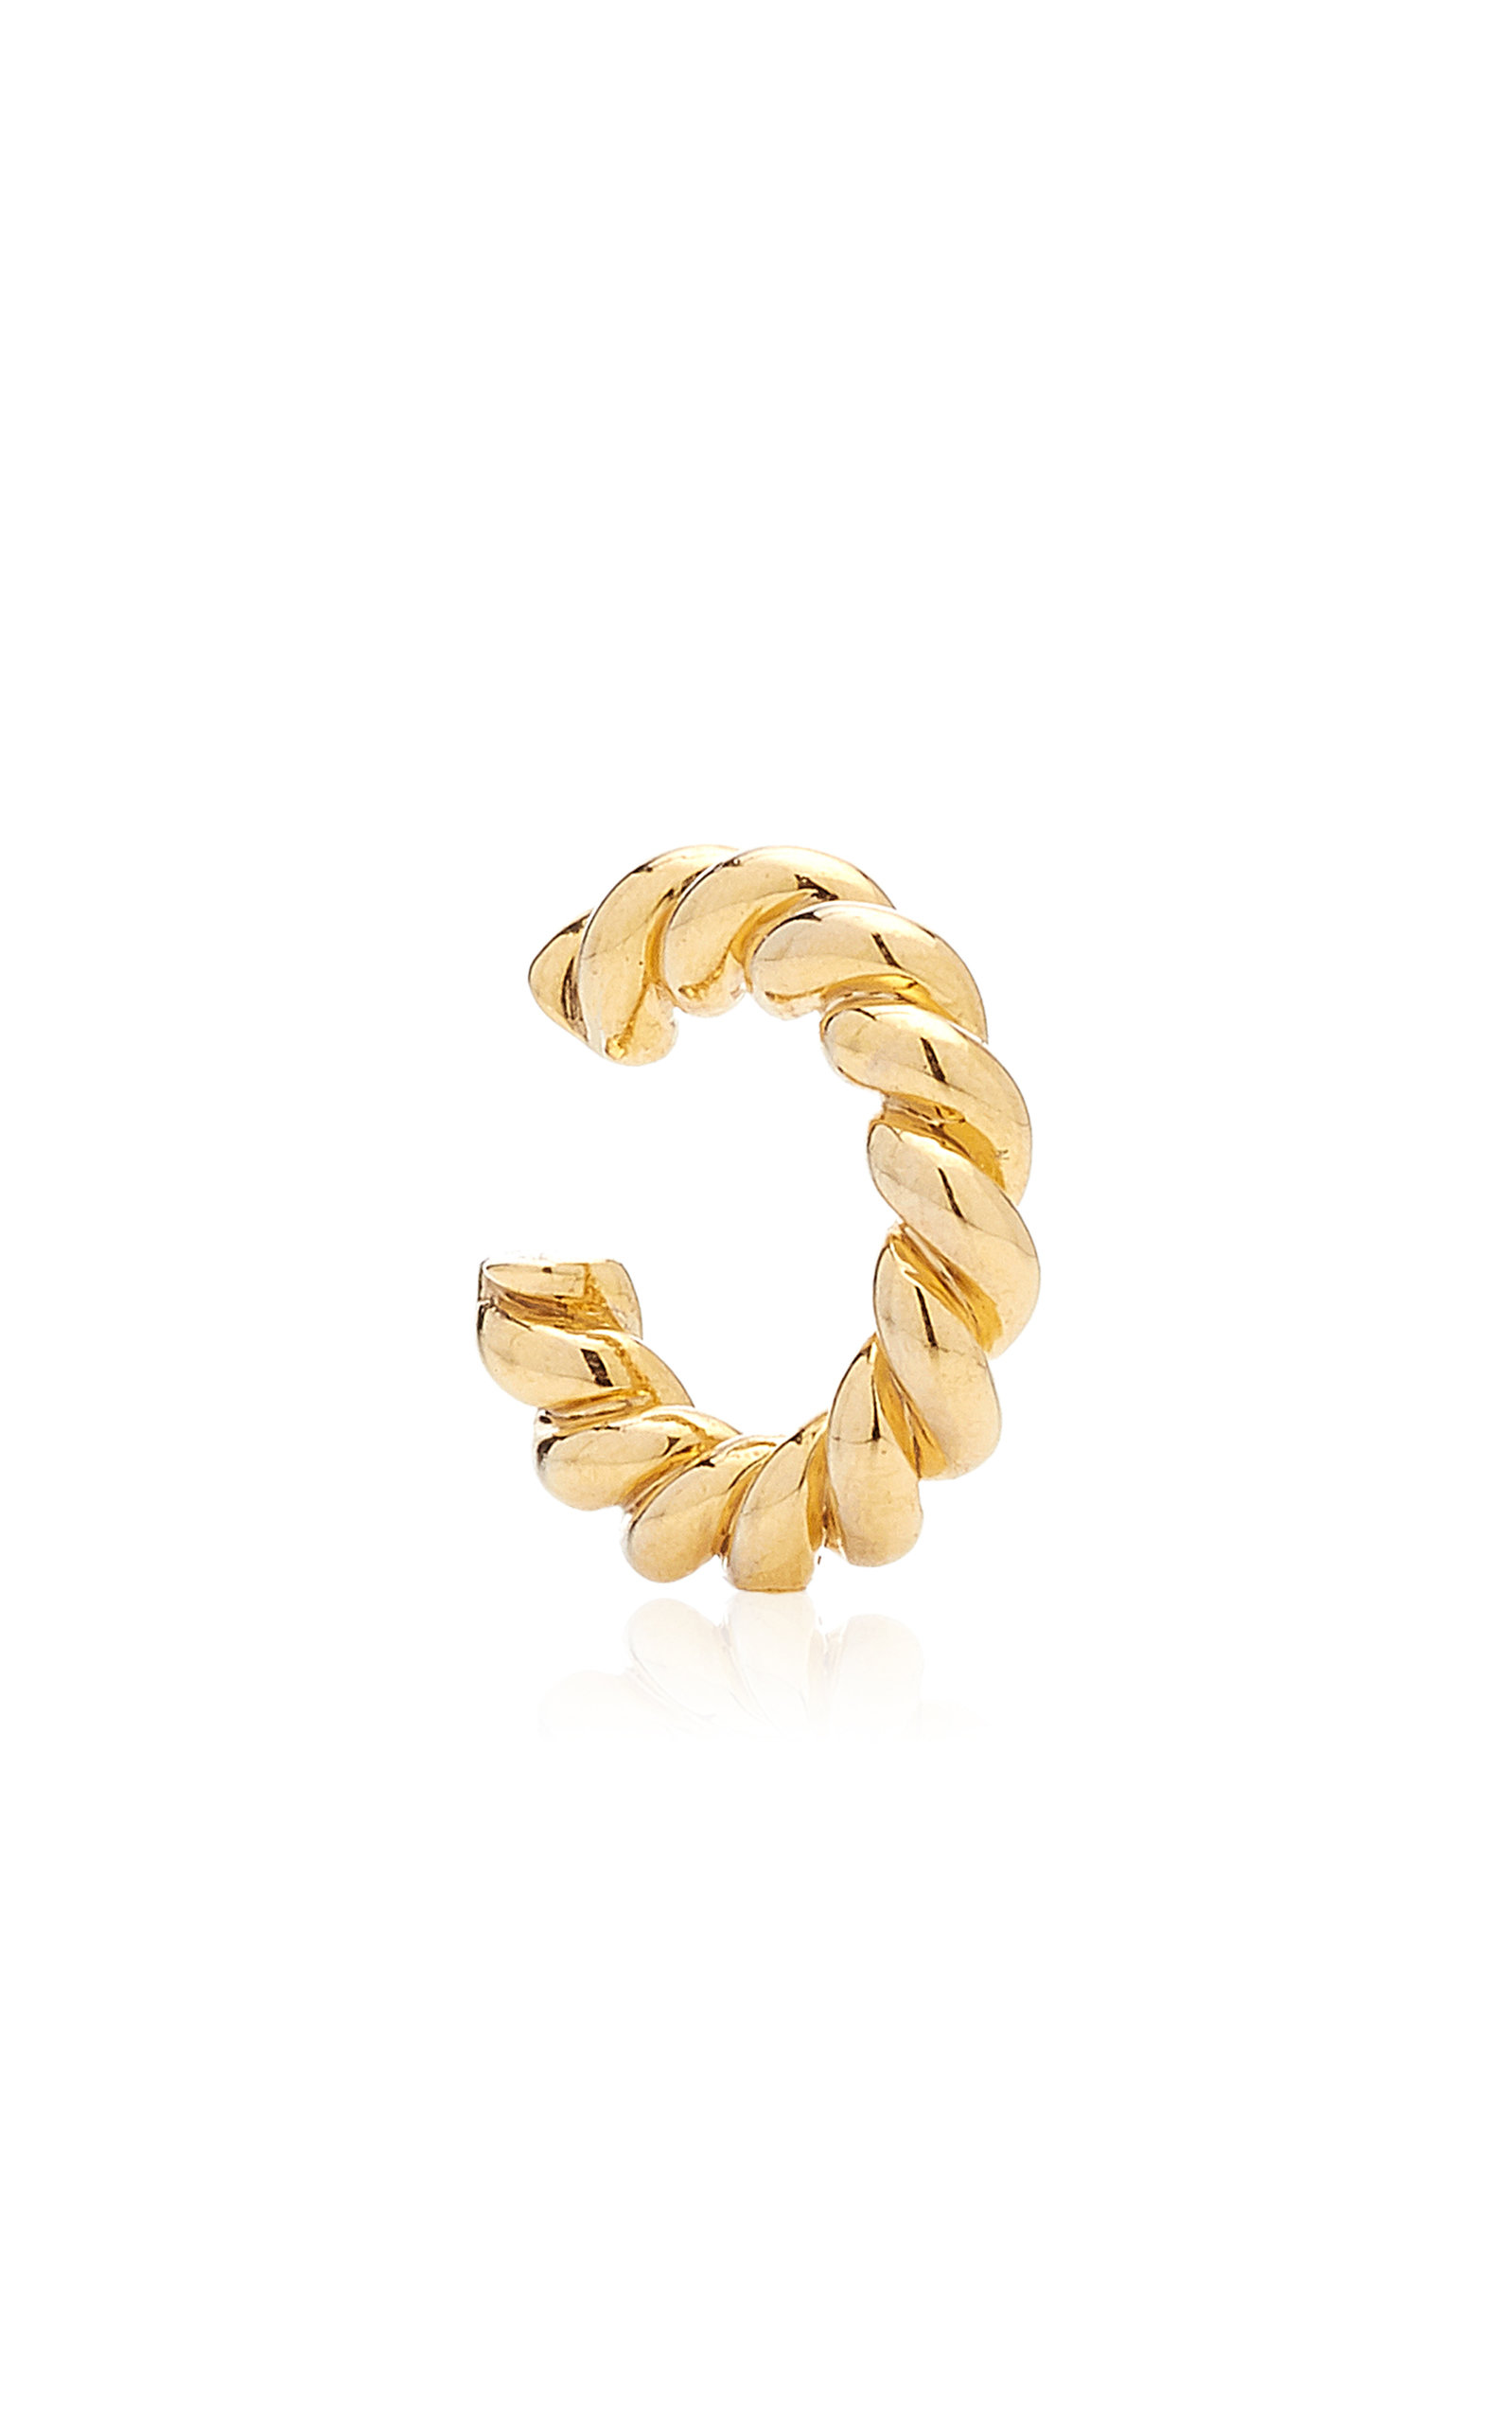 Women's Twisted Gold-Plated Ear Cuff